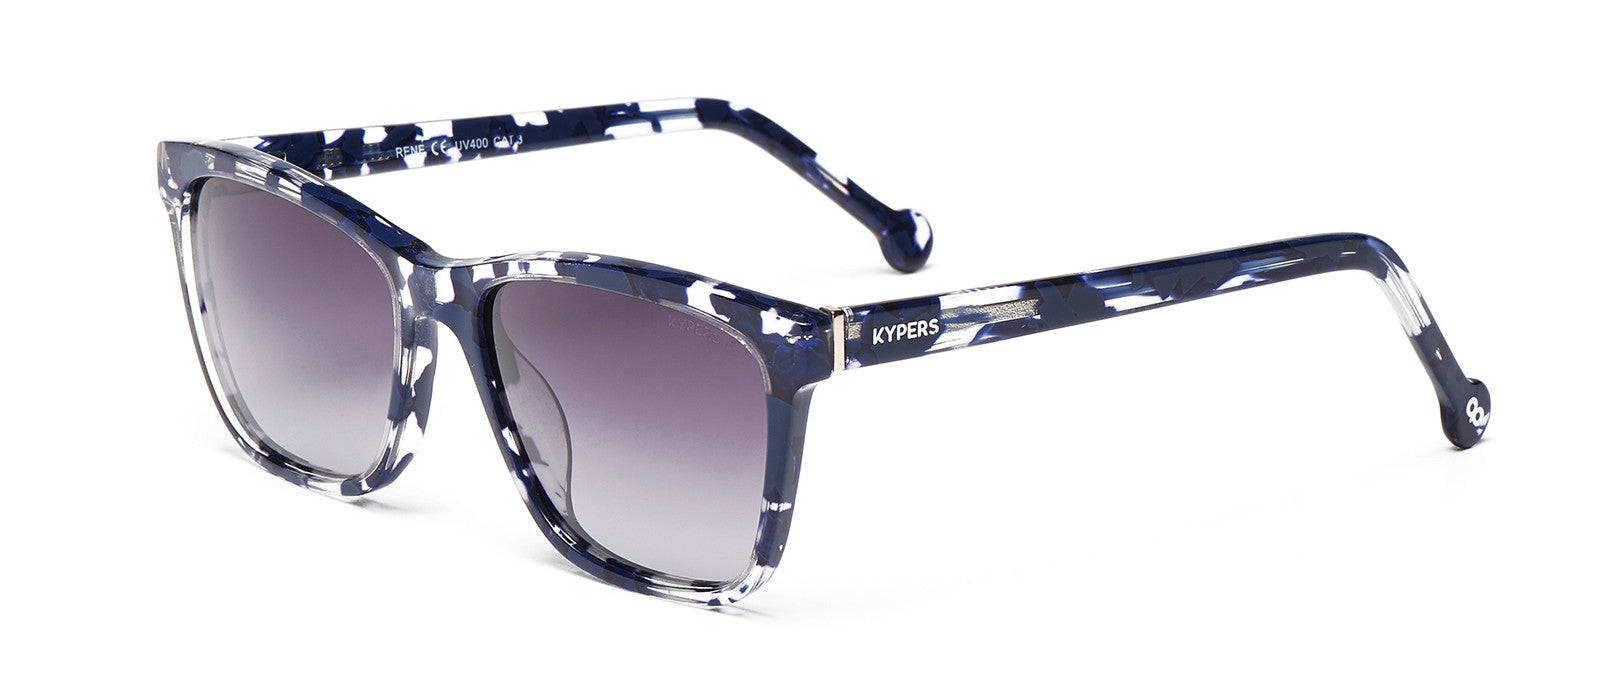 KYPERS sunglasses model RENÉ RE004 with green, white & brown demy frame and green revo lens